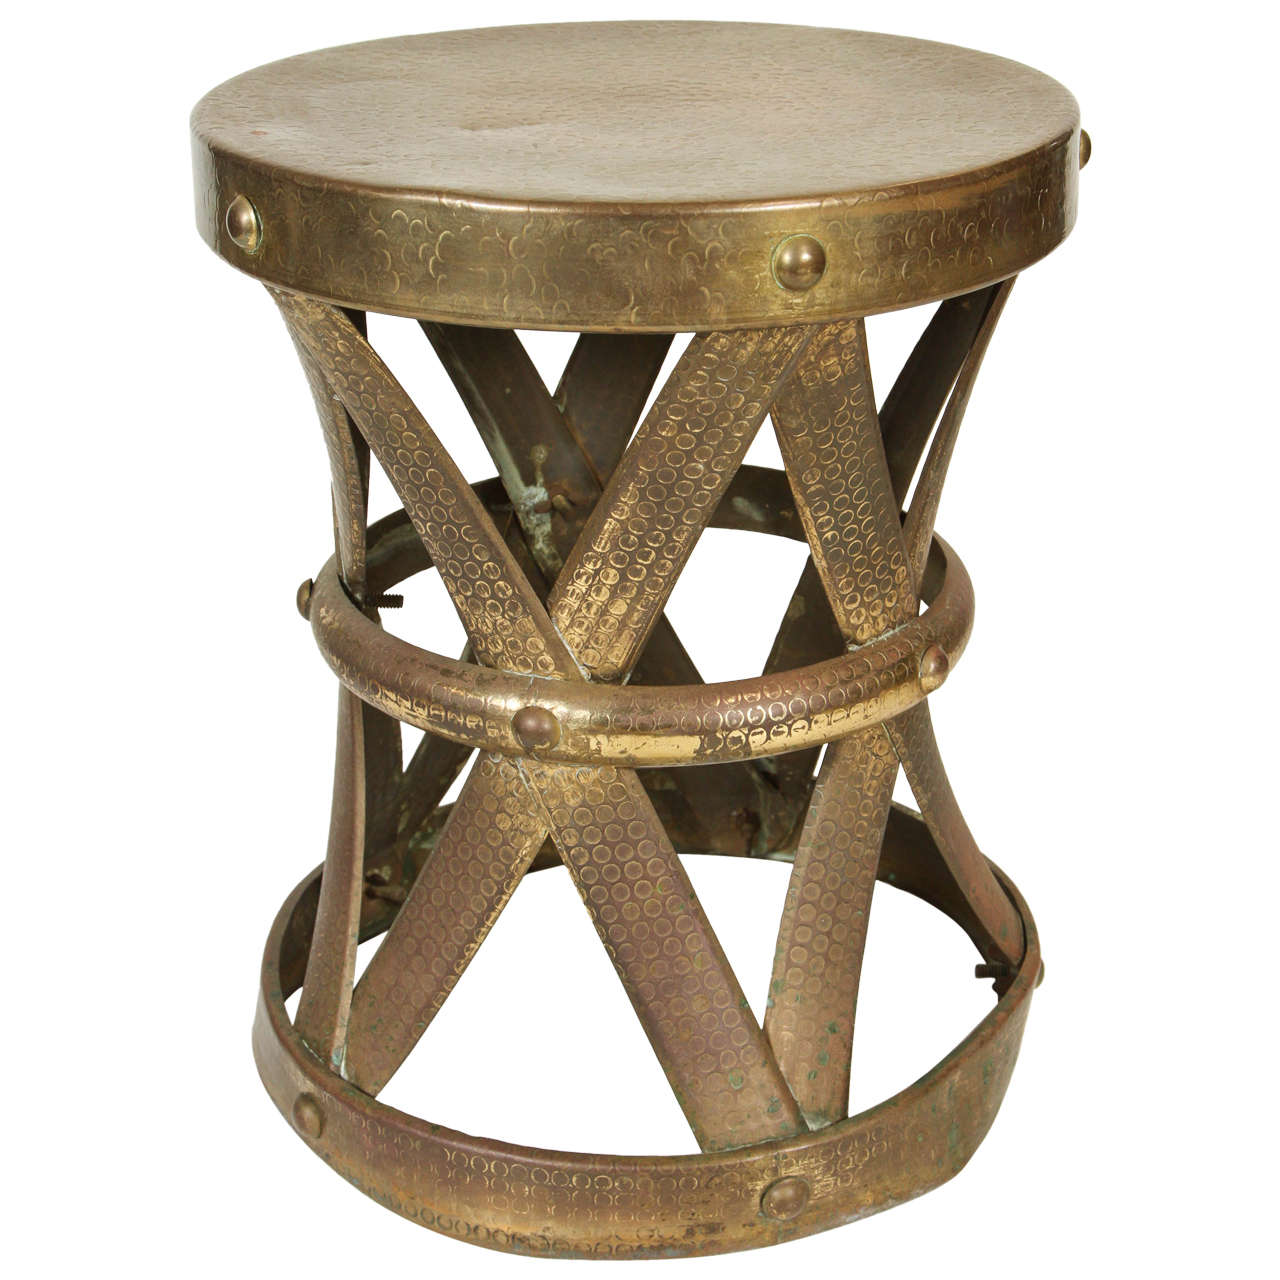 sc 1 st  1stDibs & Vintage Brass X-Drum Table or Stool at 1stdibs islam-shia.org